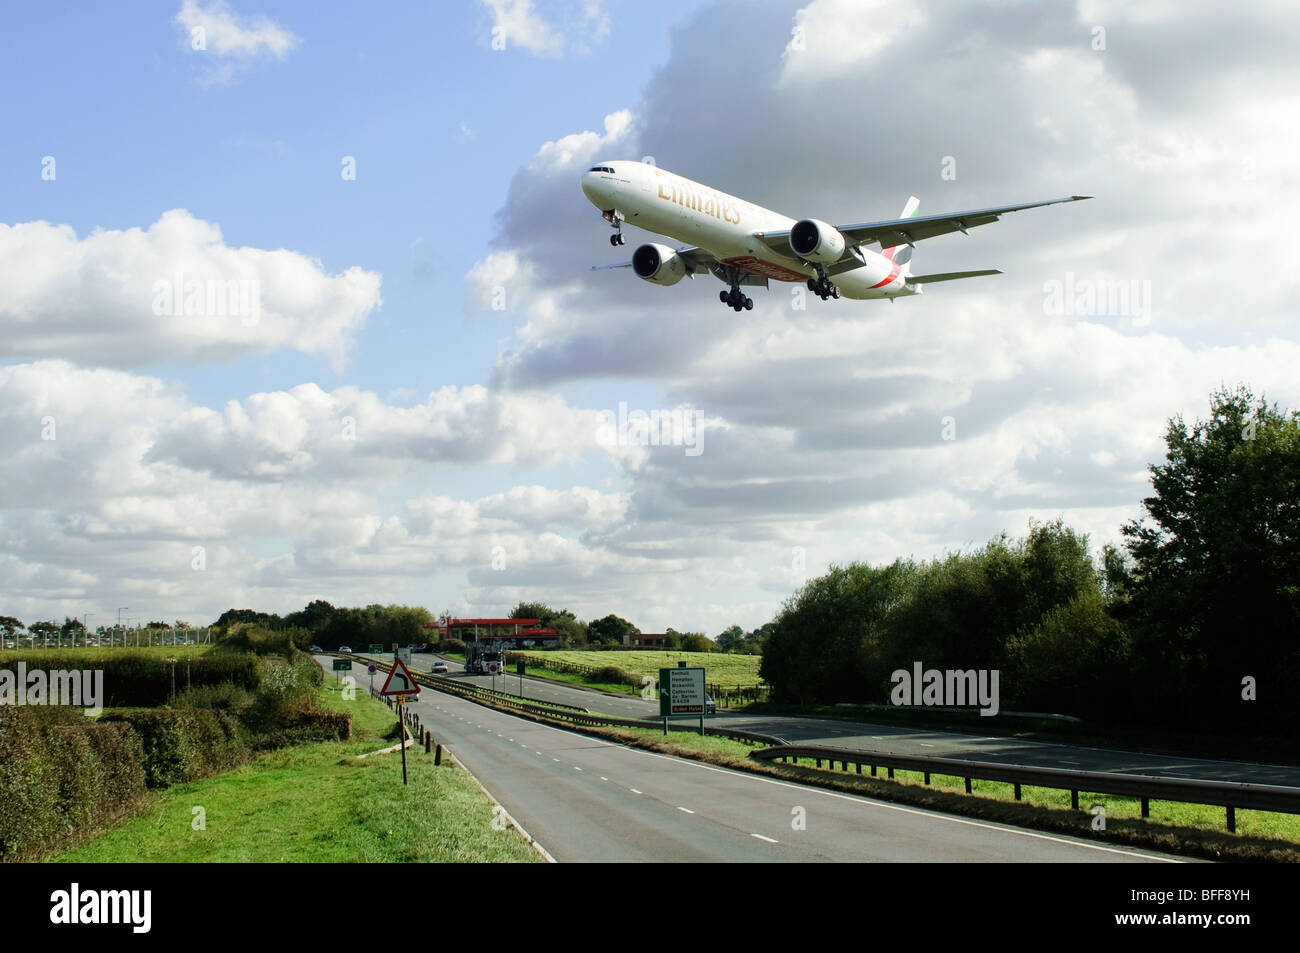 Boeing 777 operated by Emirates crosses the A45 dual carriageway on approach for landing at Birmingham Airport - Stock Image